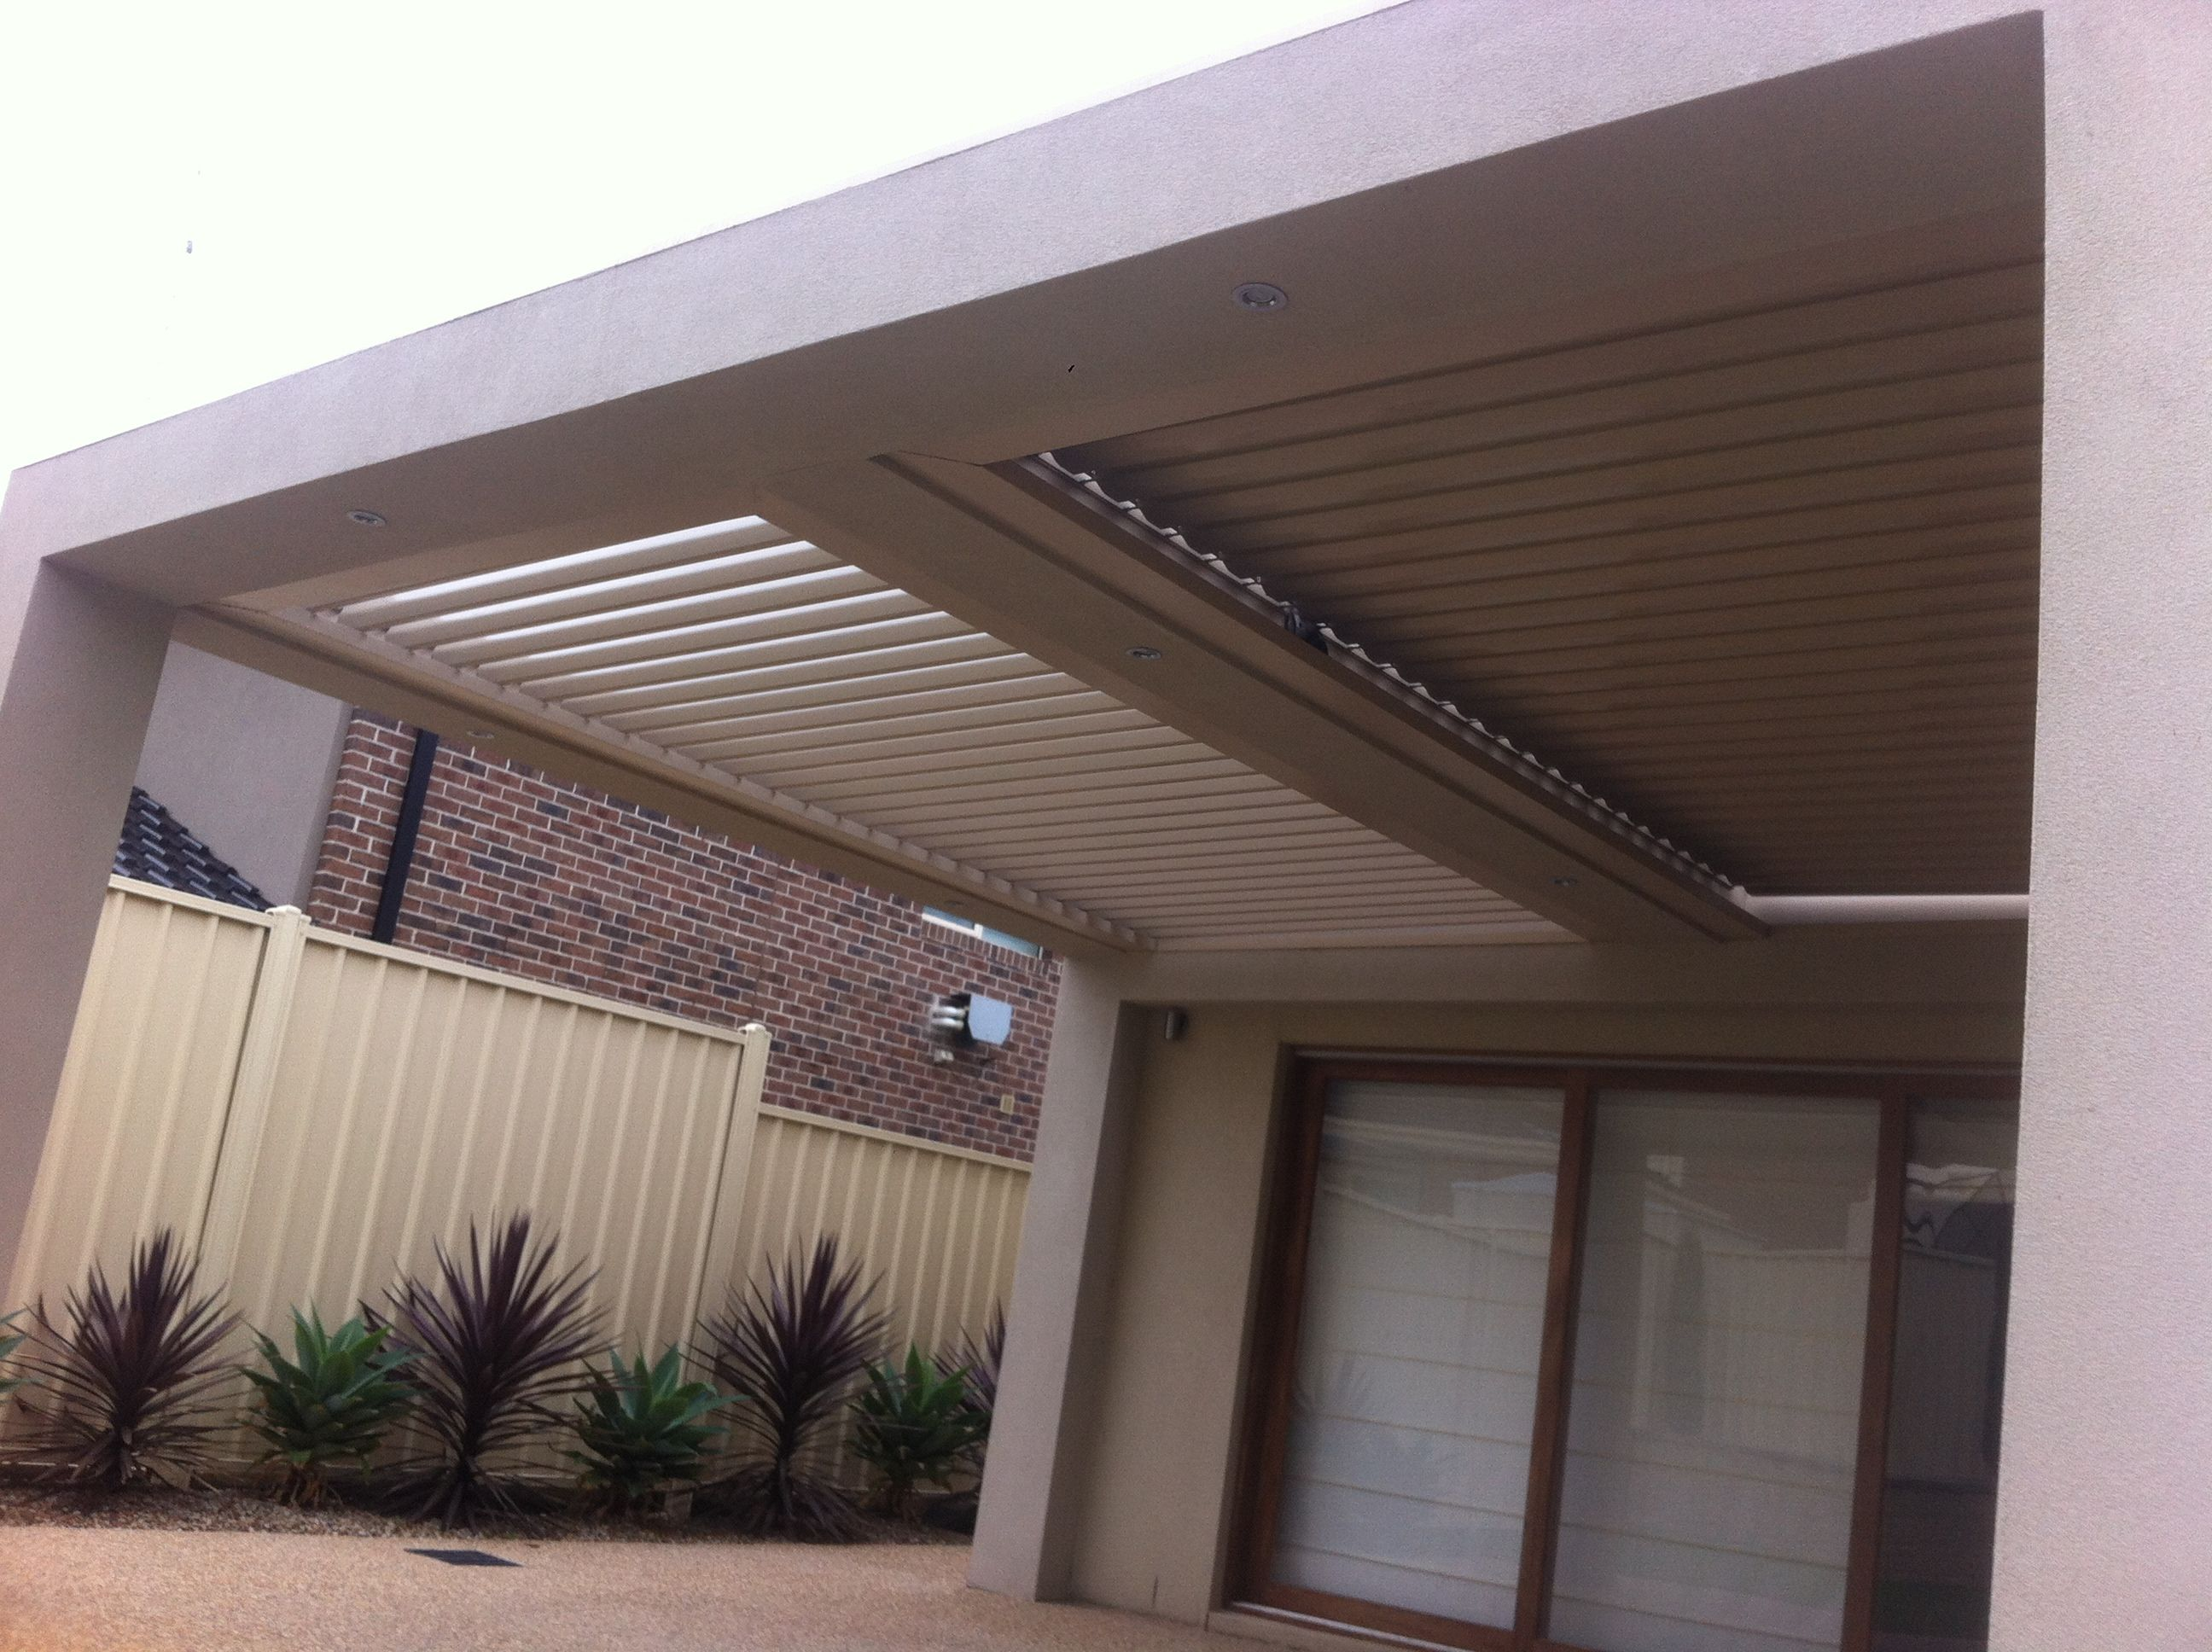 A Rendered Louver Project Including Two Bays Which Allows Flexibility To Open One Or Both Plus Lights In Middle Of Veranda Outdoor Design Outdoor Outdoor Range